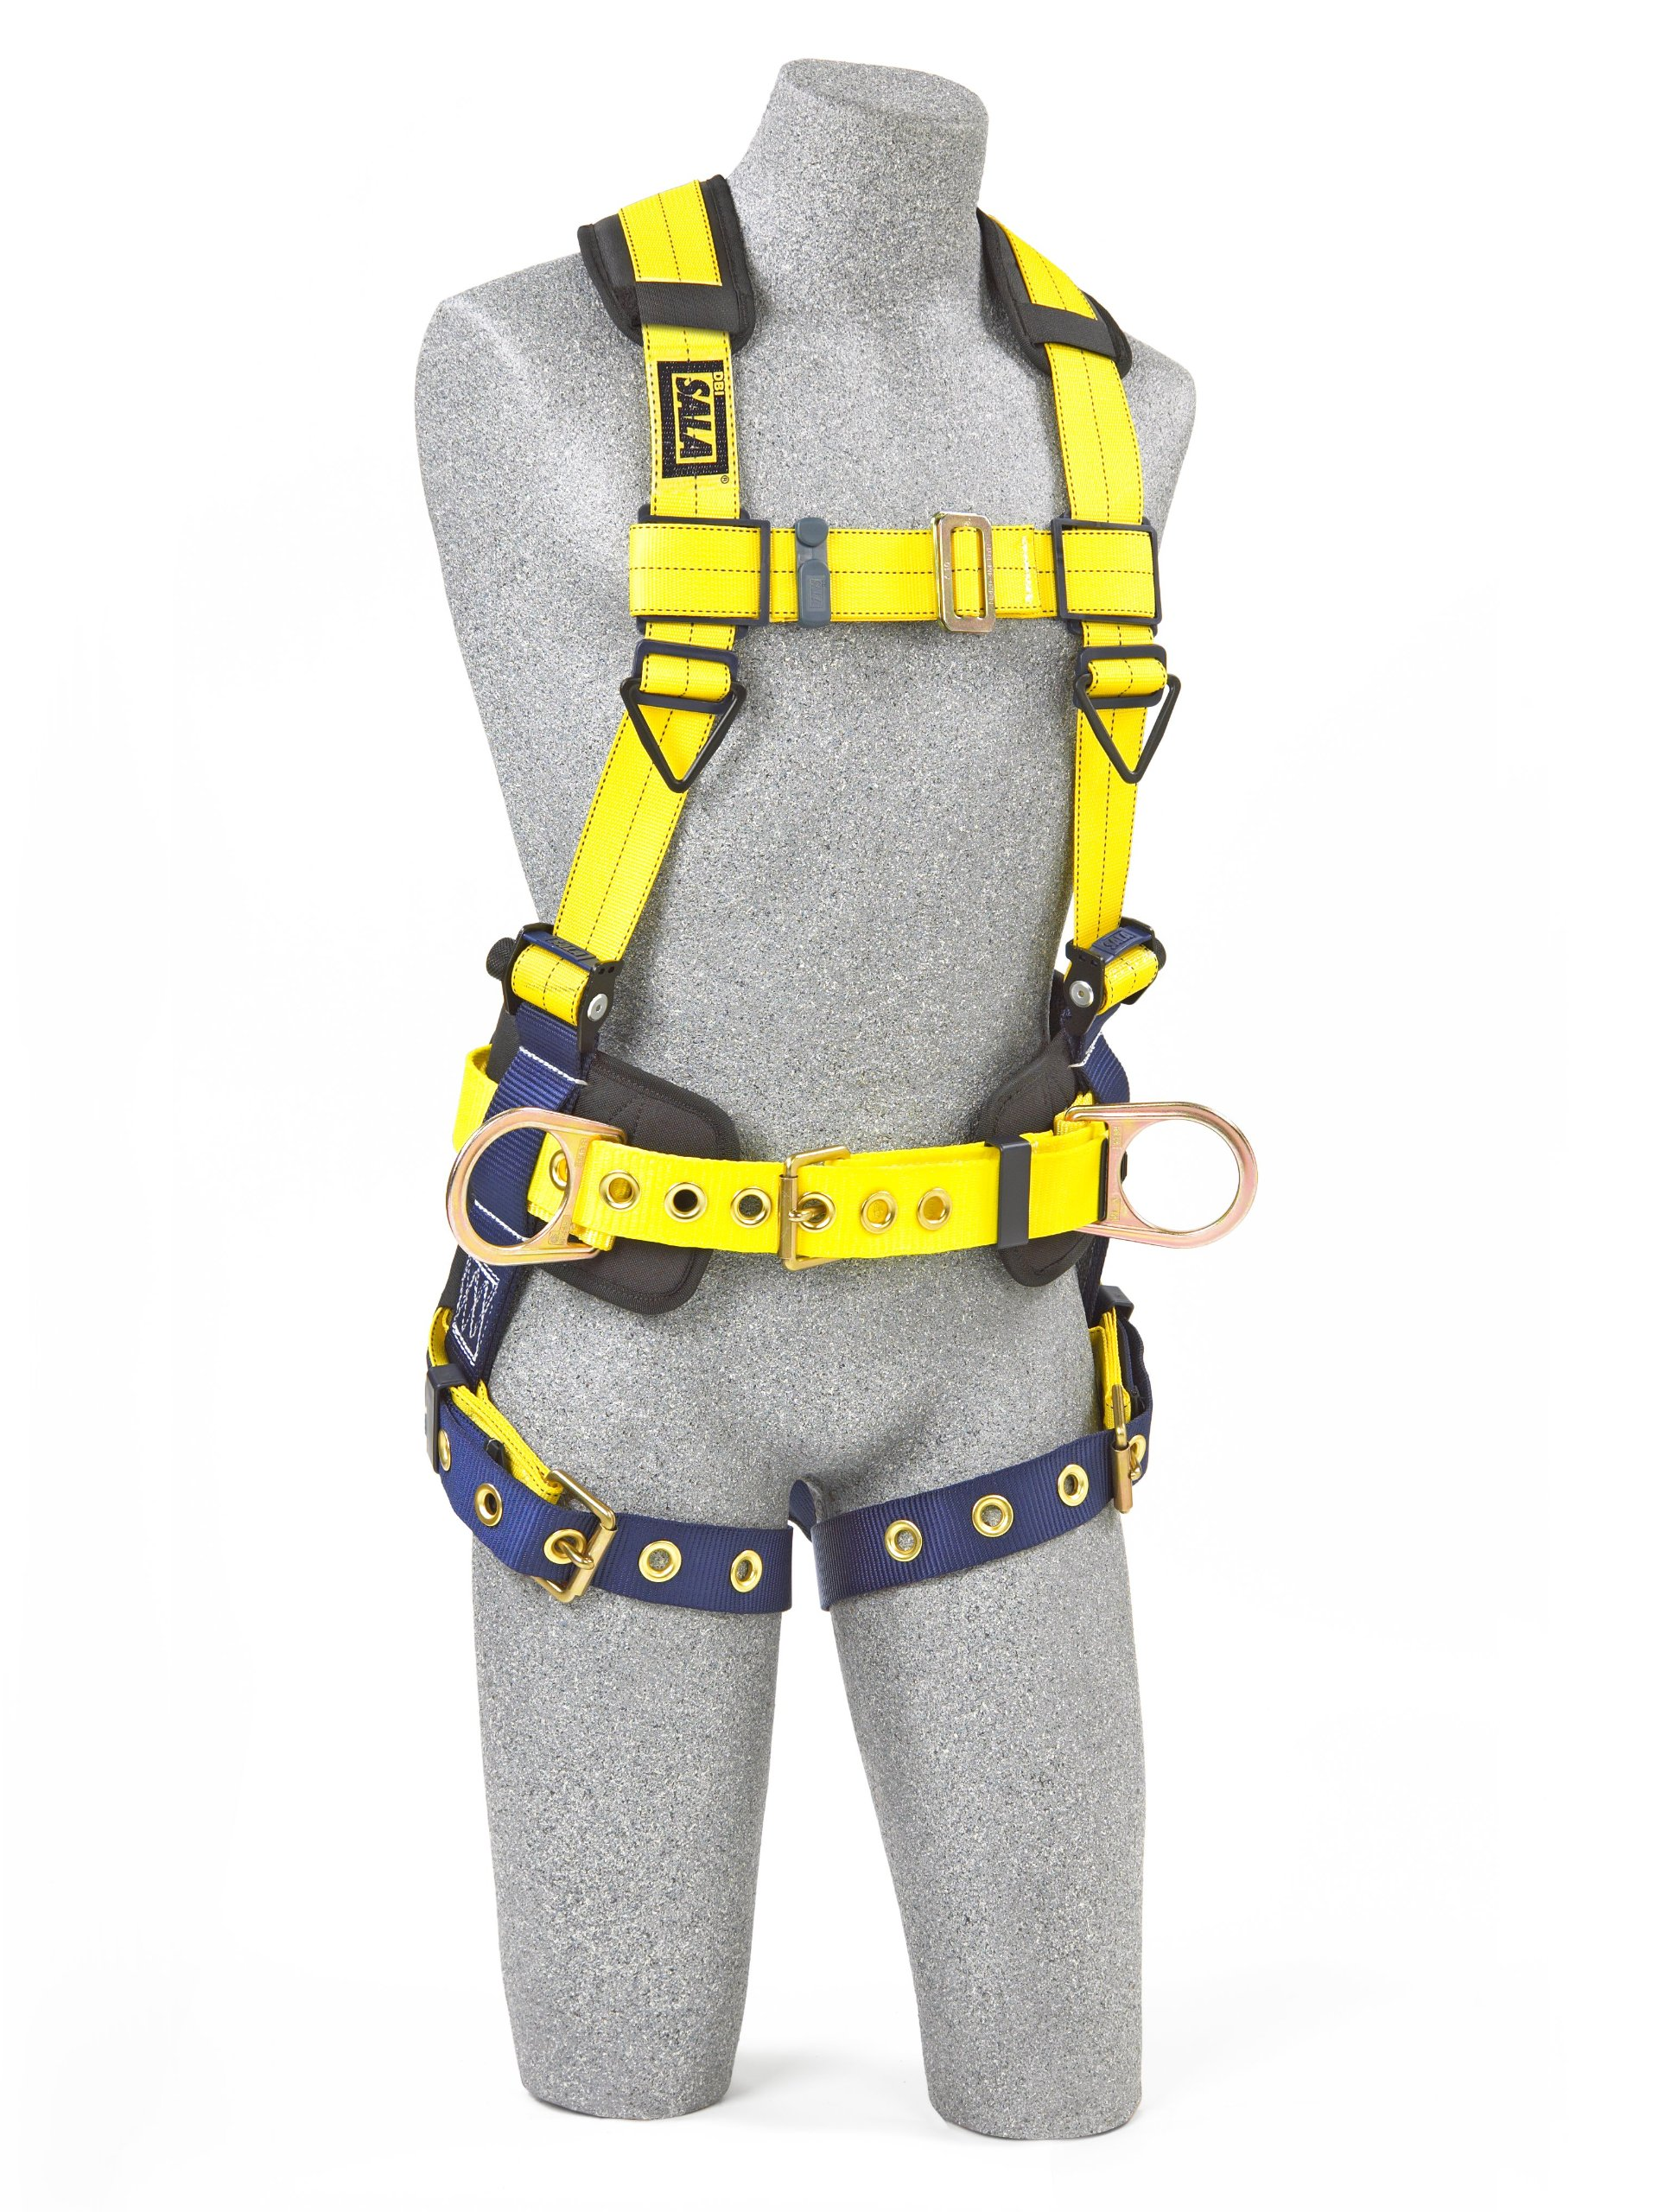 3M DBI-SALA Delta 1101654 Construction Harness, Back/Side D-Rings, Belt w/Sewn-In Back & Shoulder Pads, Tongue Buckle Leg Straps, Medium, Navy/Yellow